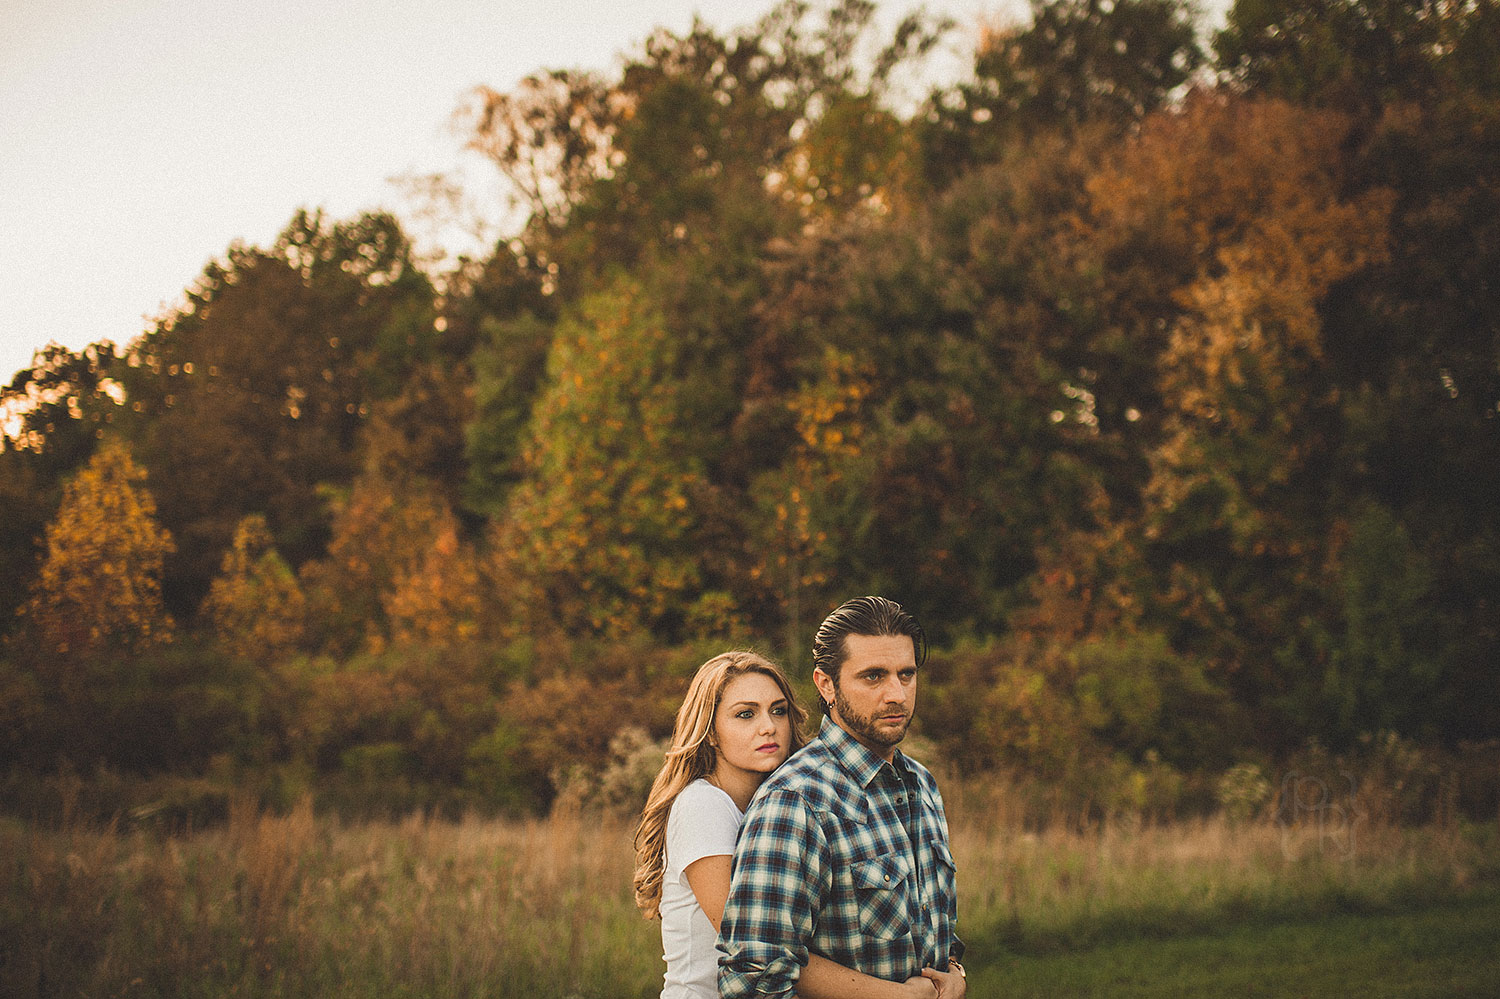 pat-robinson-photography-wilmington-engagement-session-15.jpg